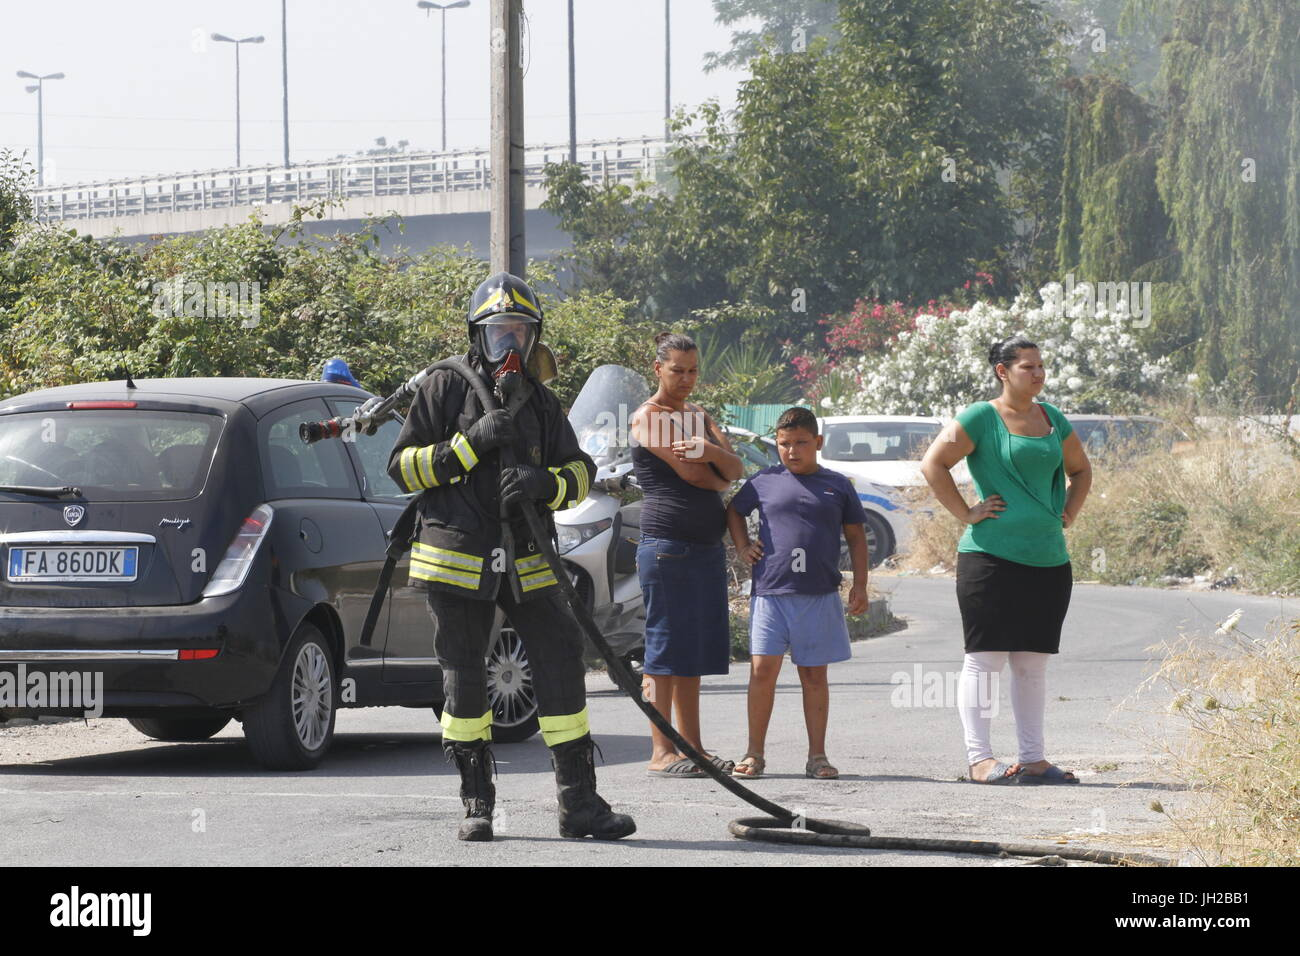 Napoli, Italy. 12th July, 2017. This morning, the nomad camp of Scampia in Naples had been subjected to an arson, - Stock Image